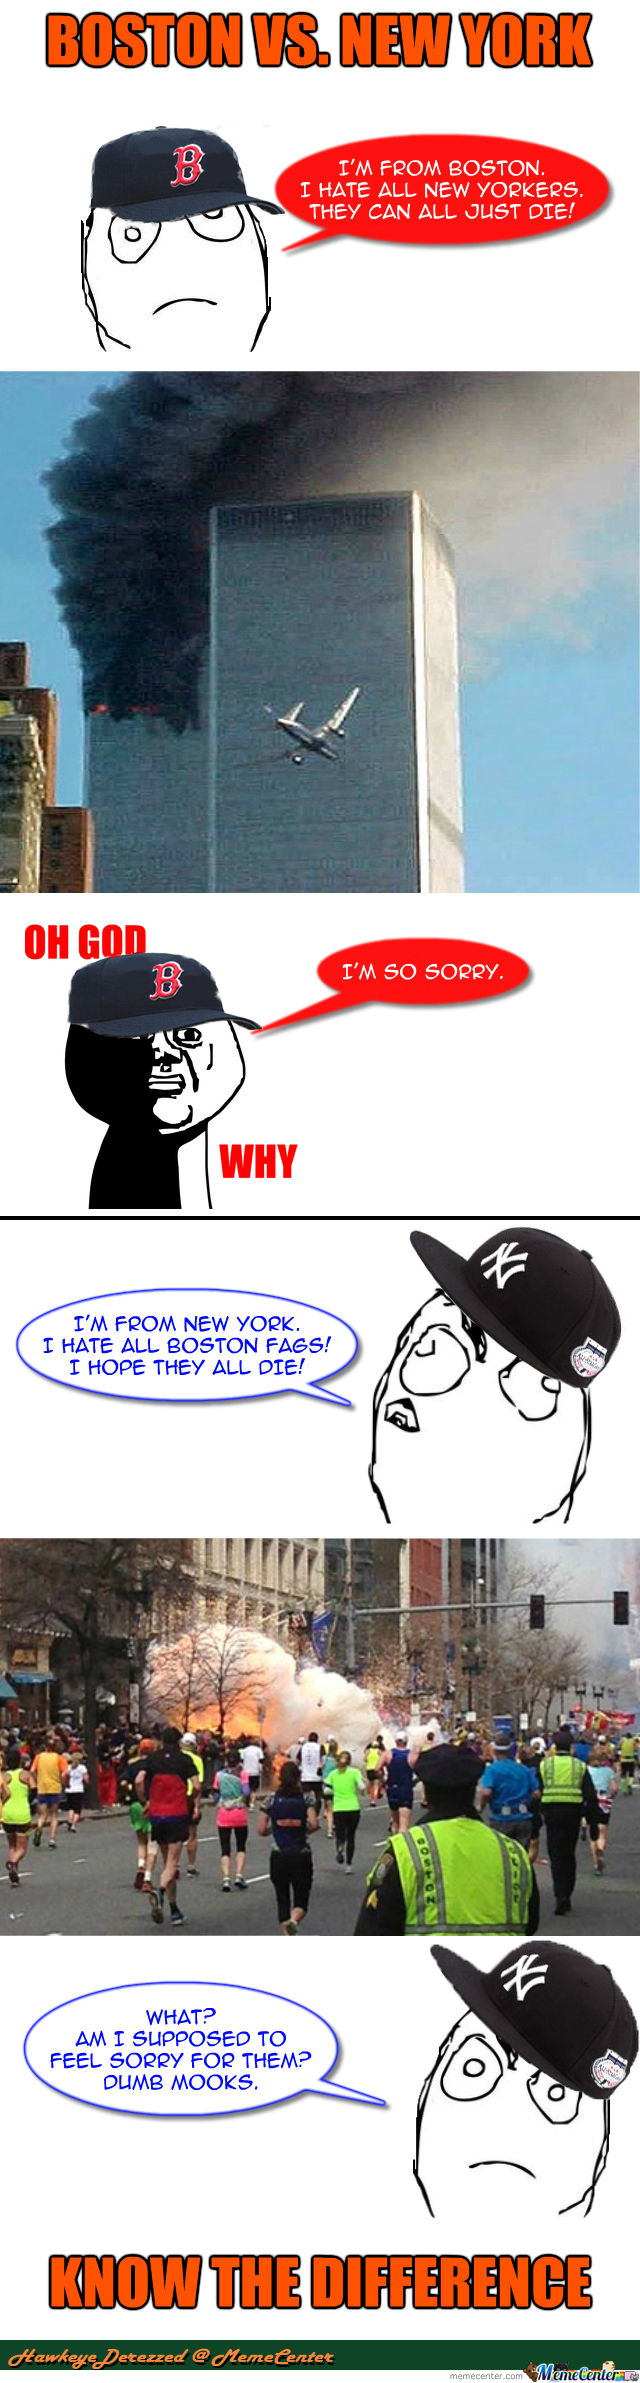 Boston Vs New York